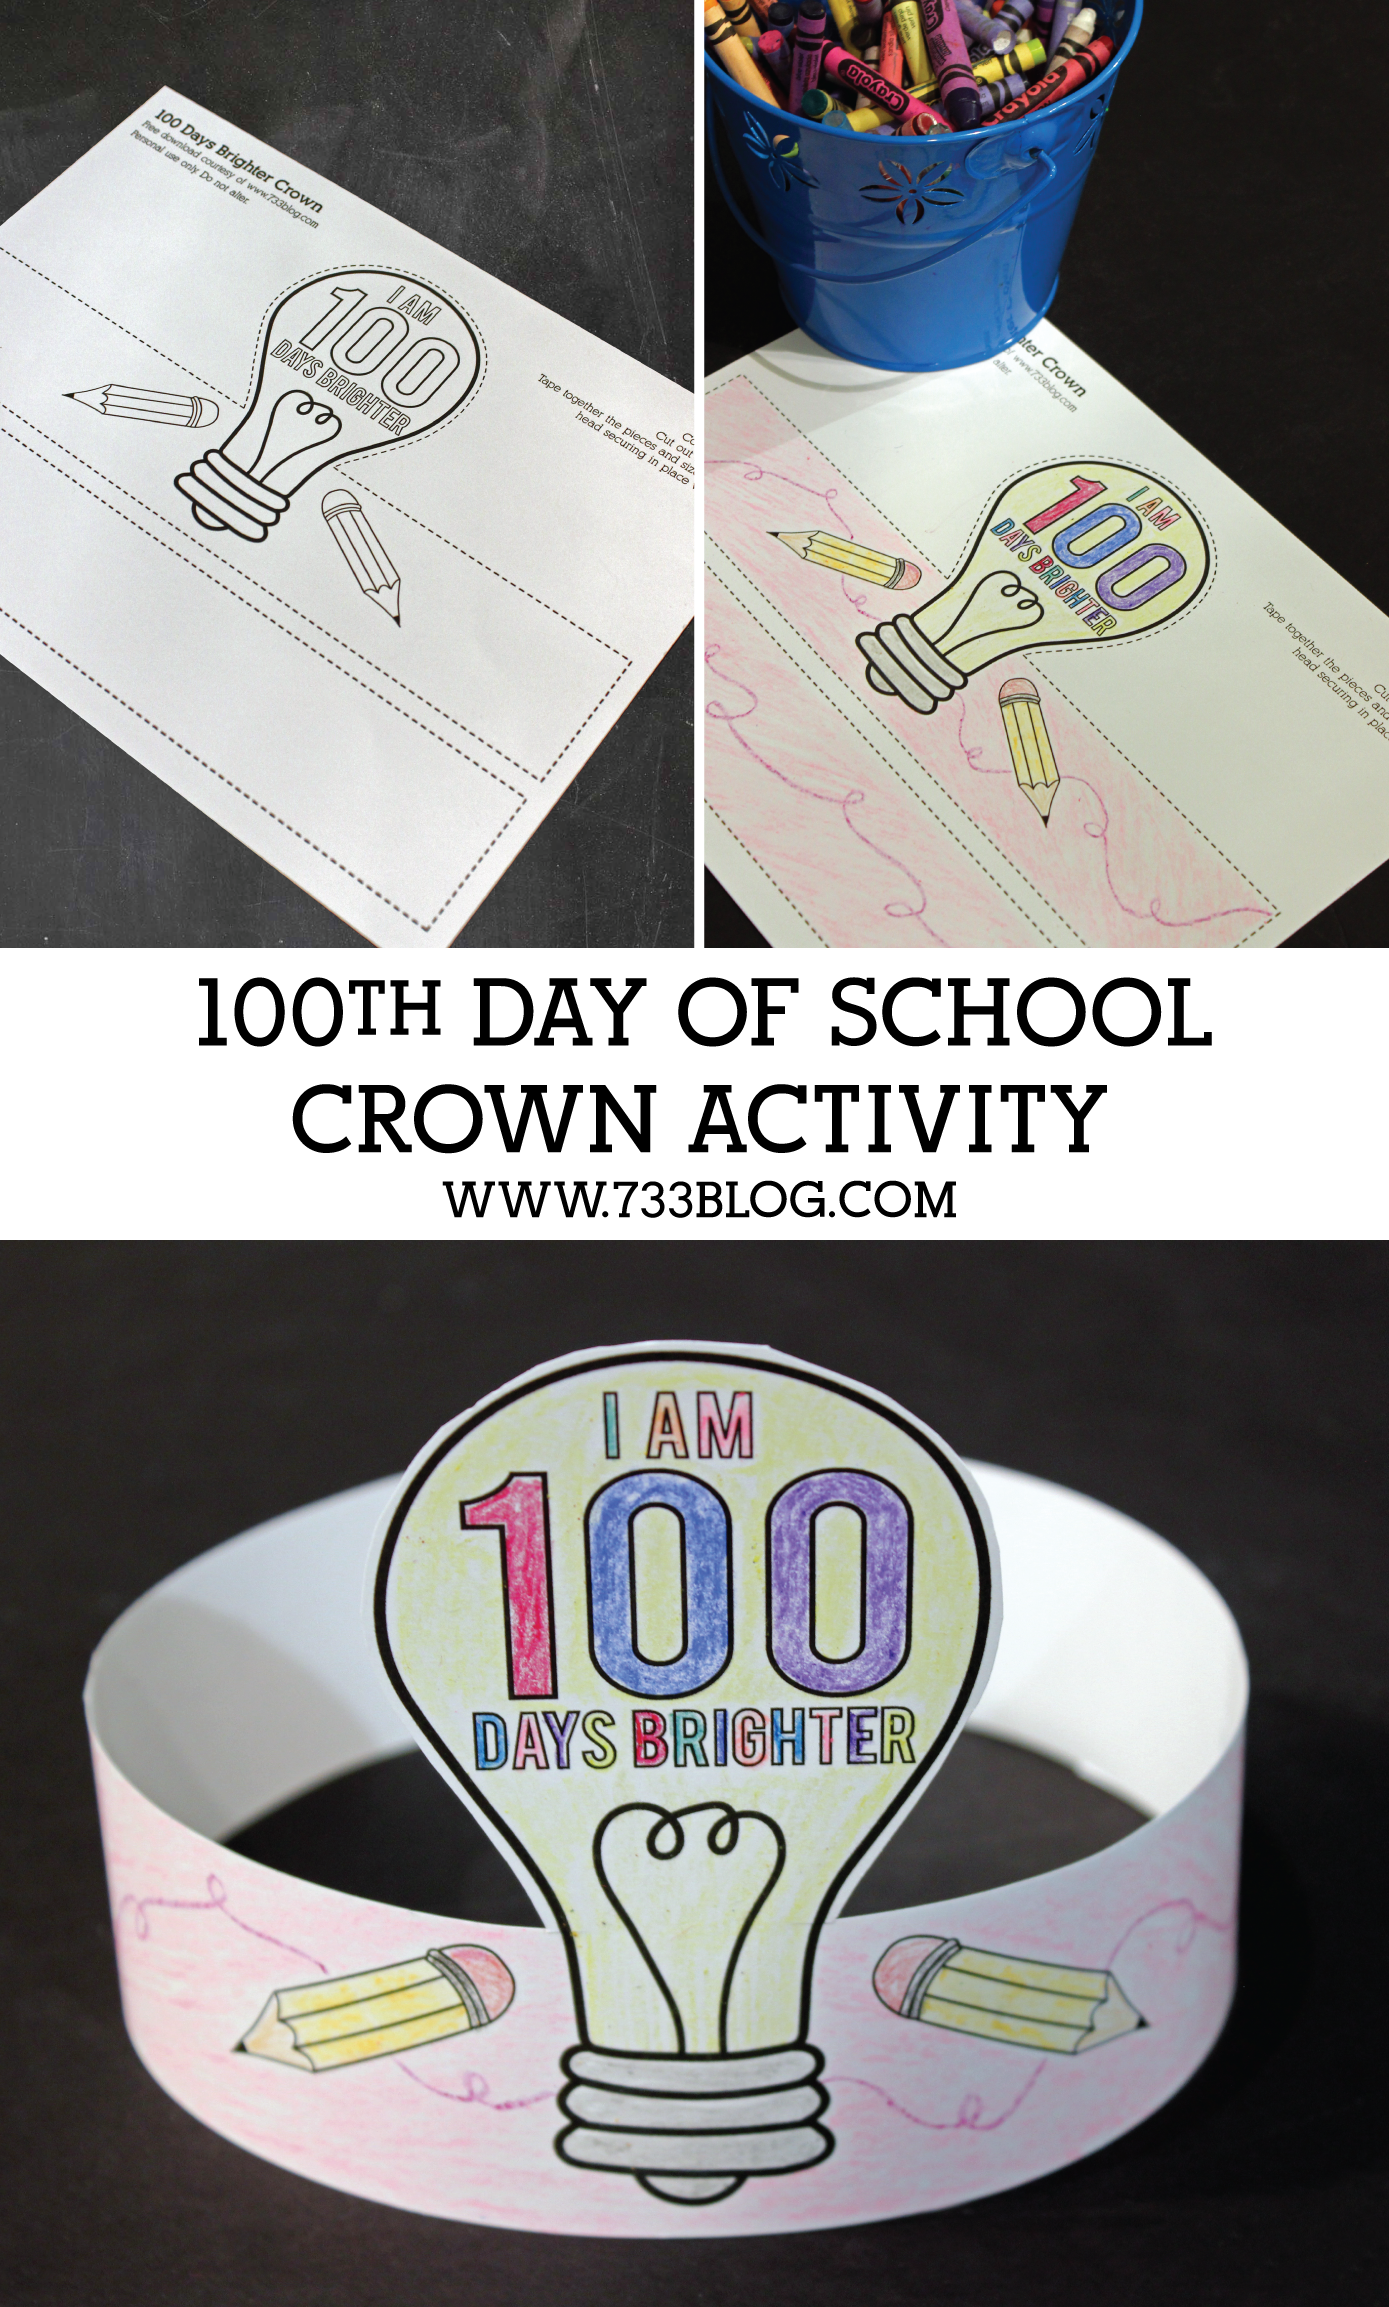 100th day of school crown template - 100 days brighter crown activity skola undervisning och